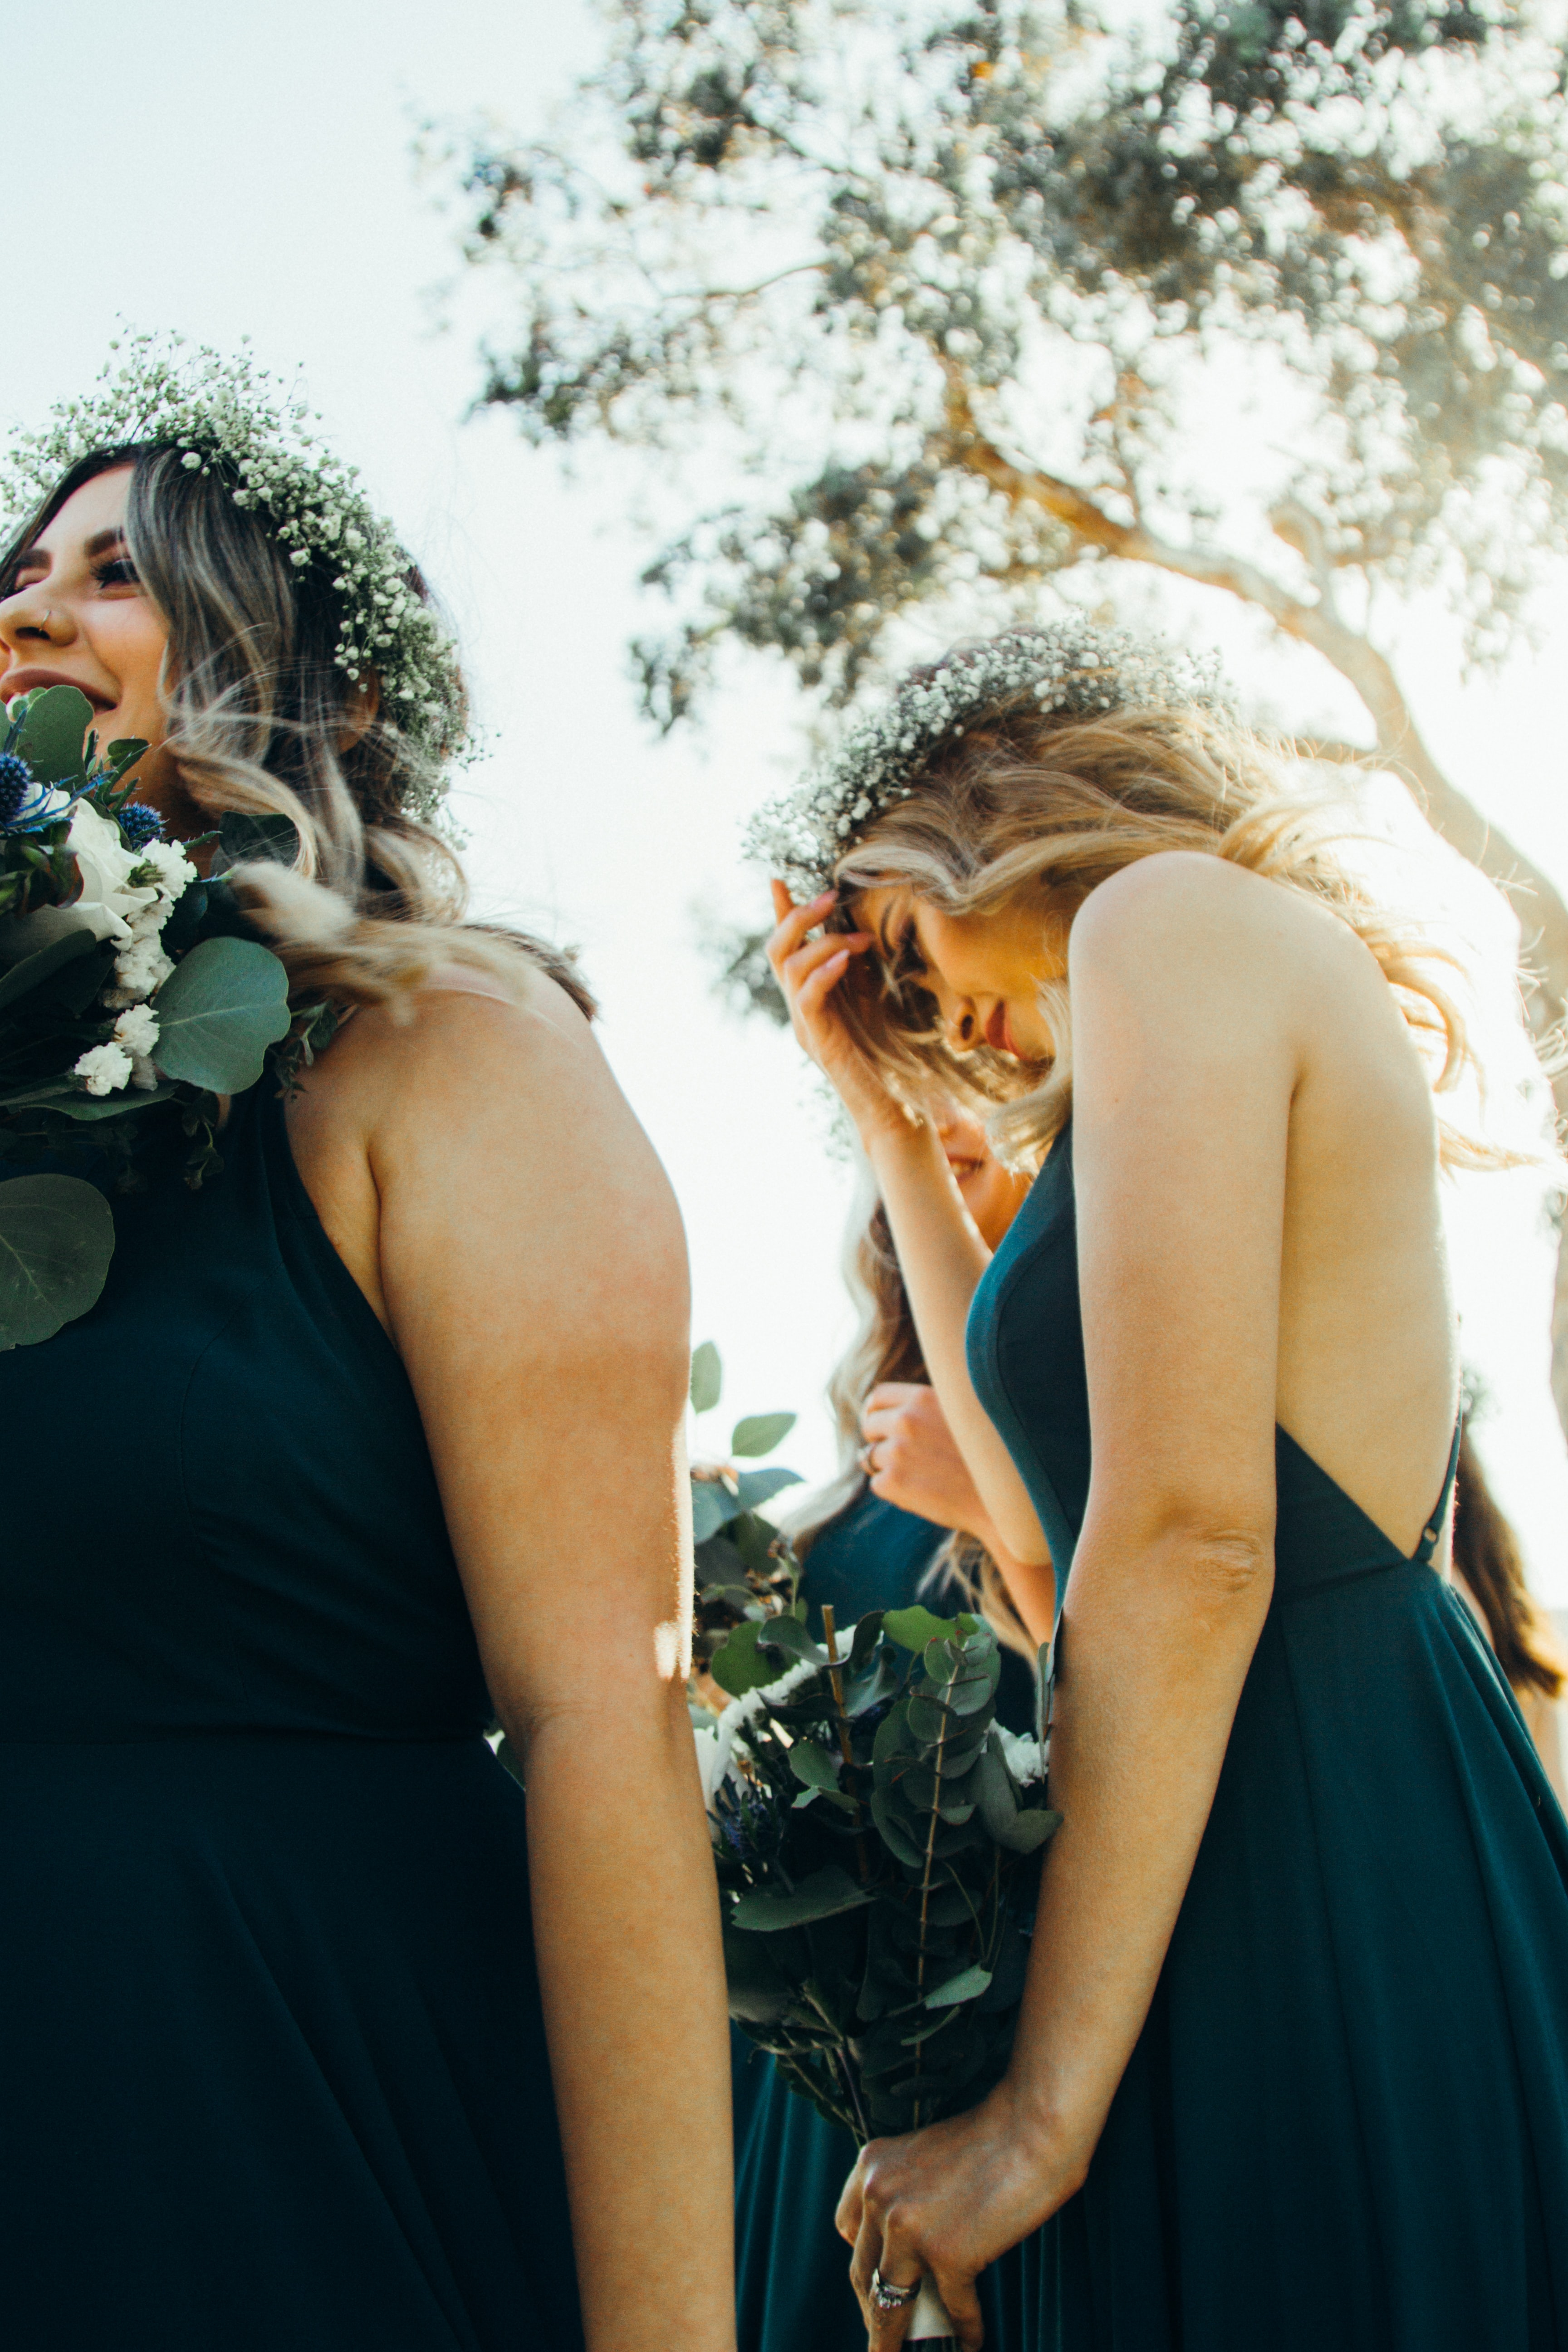 Bridesmaids wearing pretty dresses and flower crowns, enjoying themselves beneath a tree